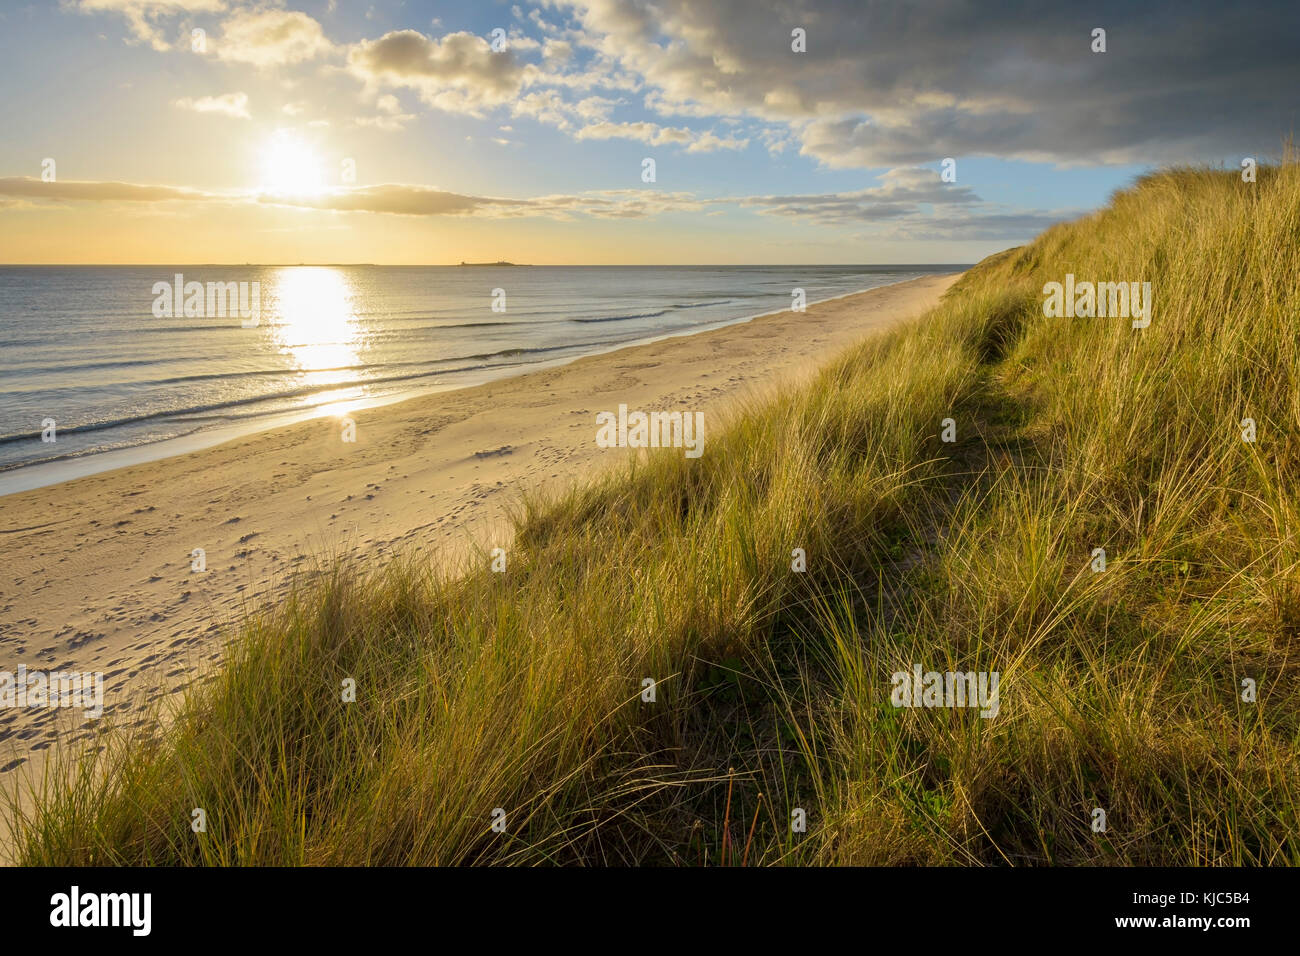 Dune grass and beach at sunrise along the North Sea at Bamburgh in Northumberland, England, United Kingdom - Stock Image